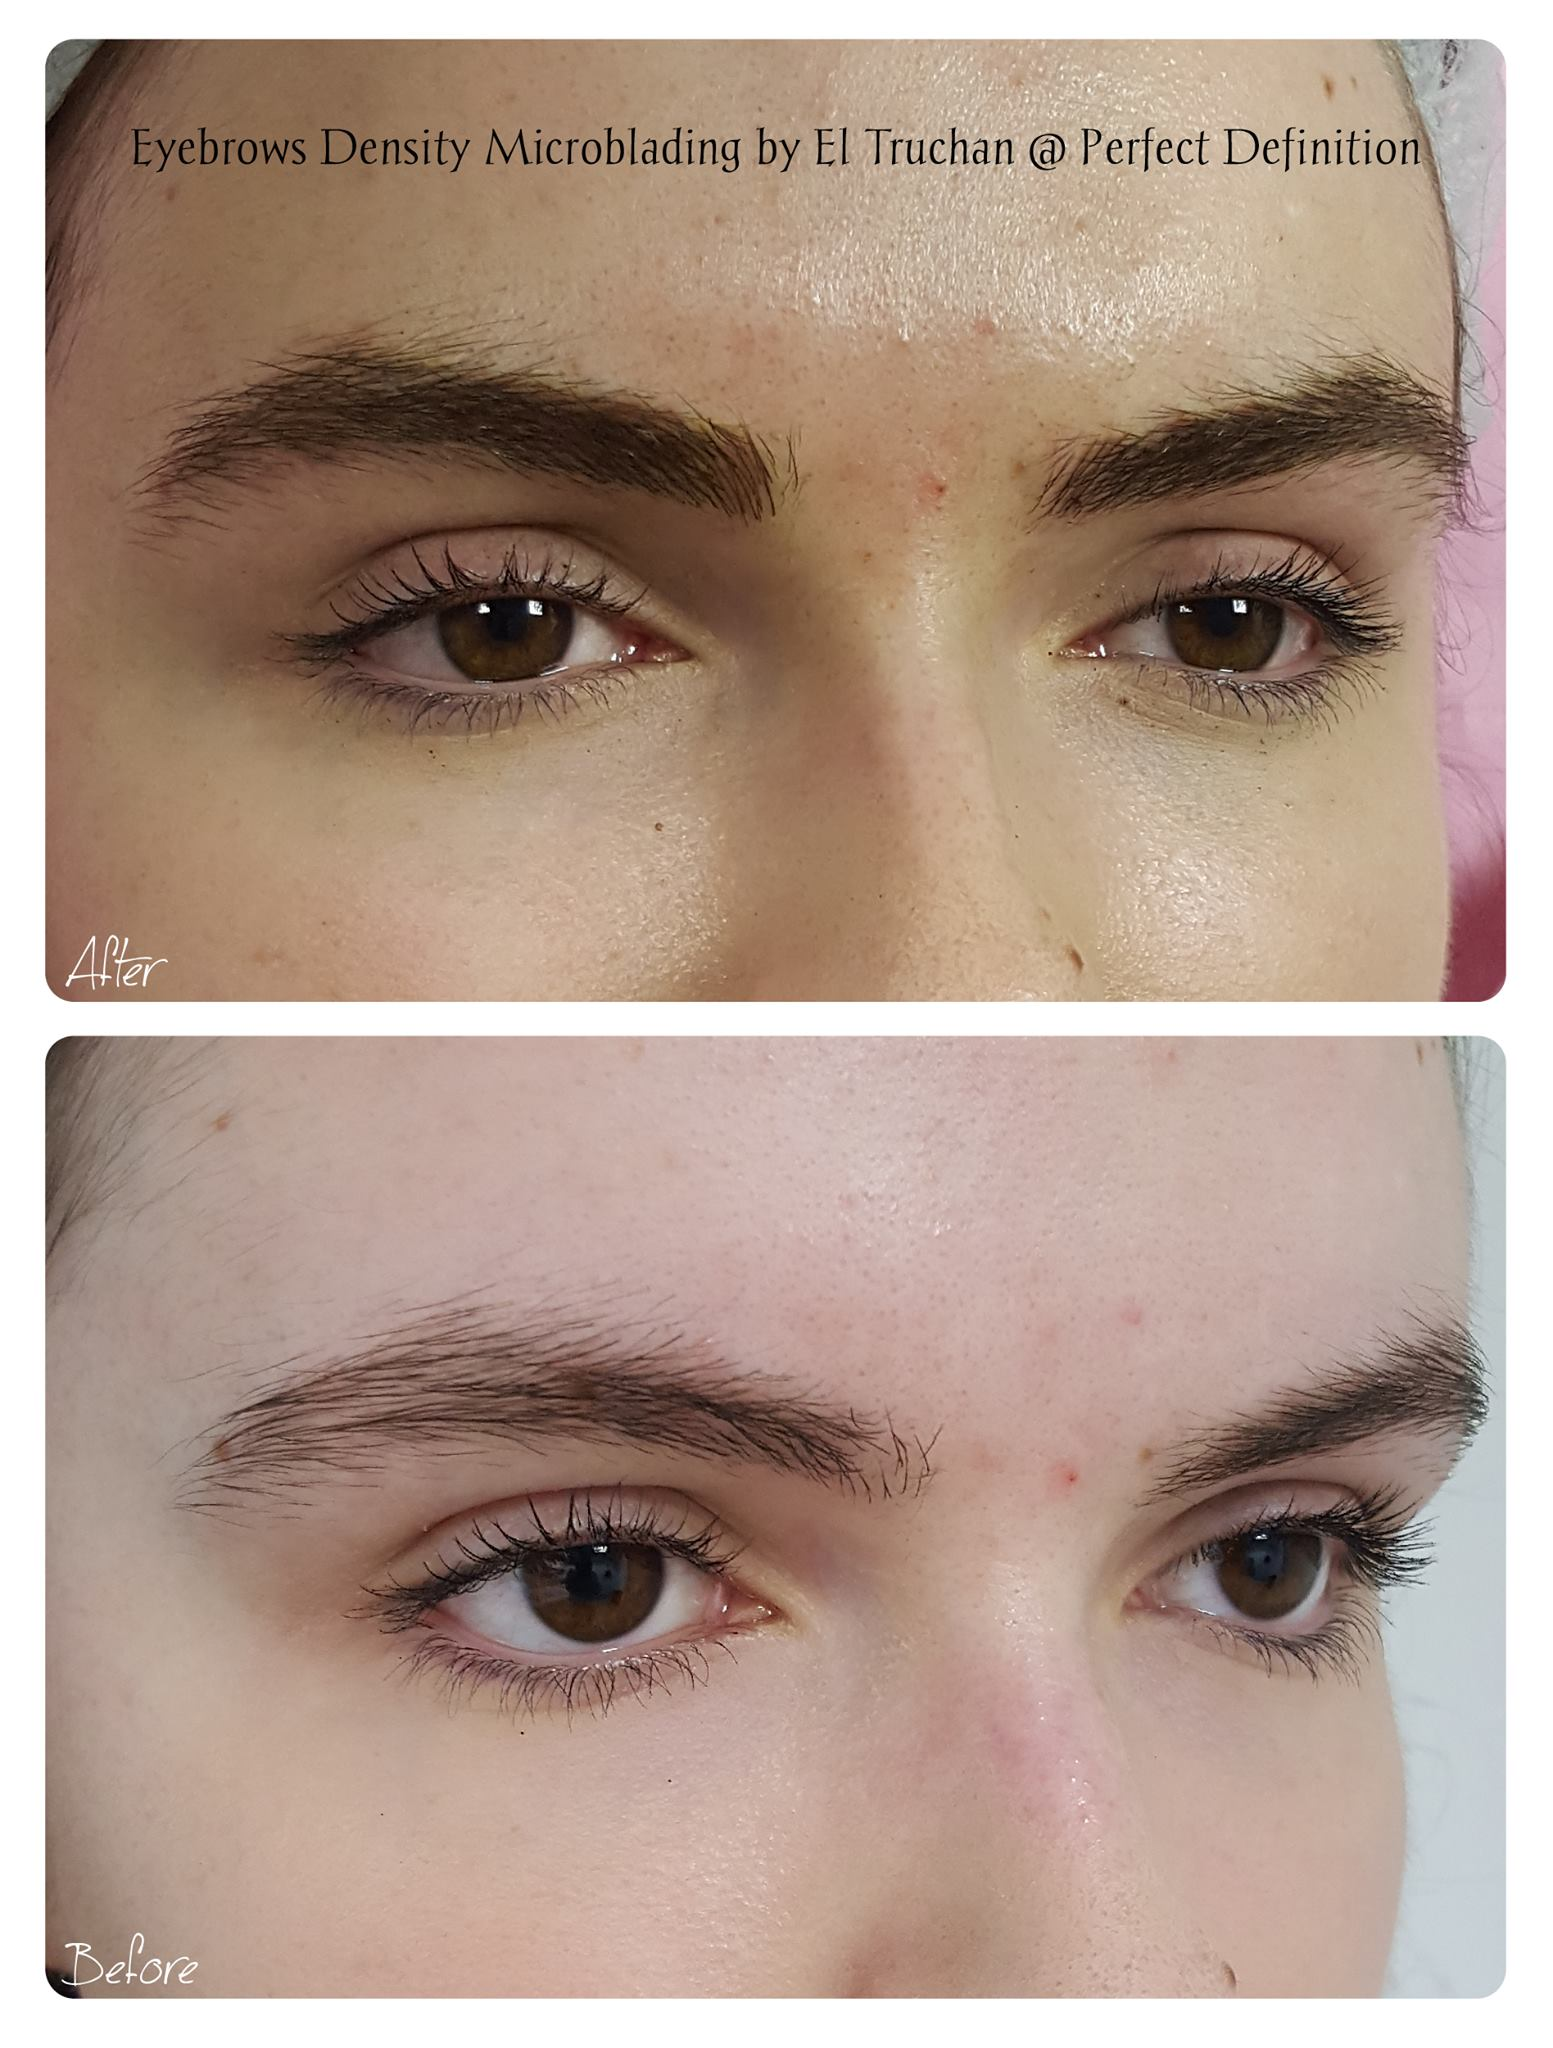 Eyebrows Density Microblading by El Truc